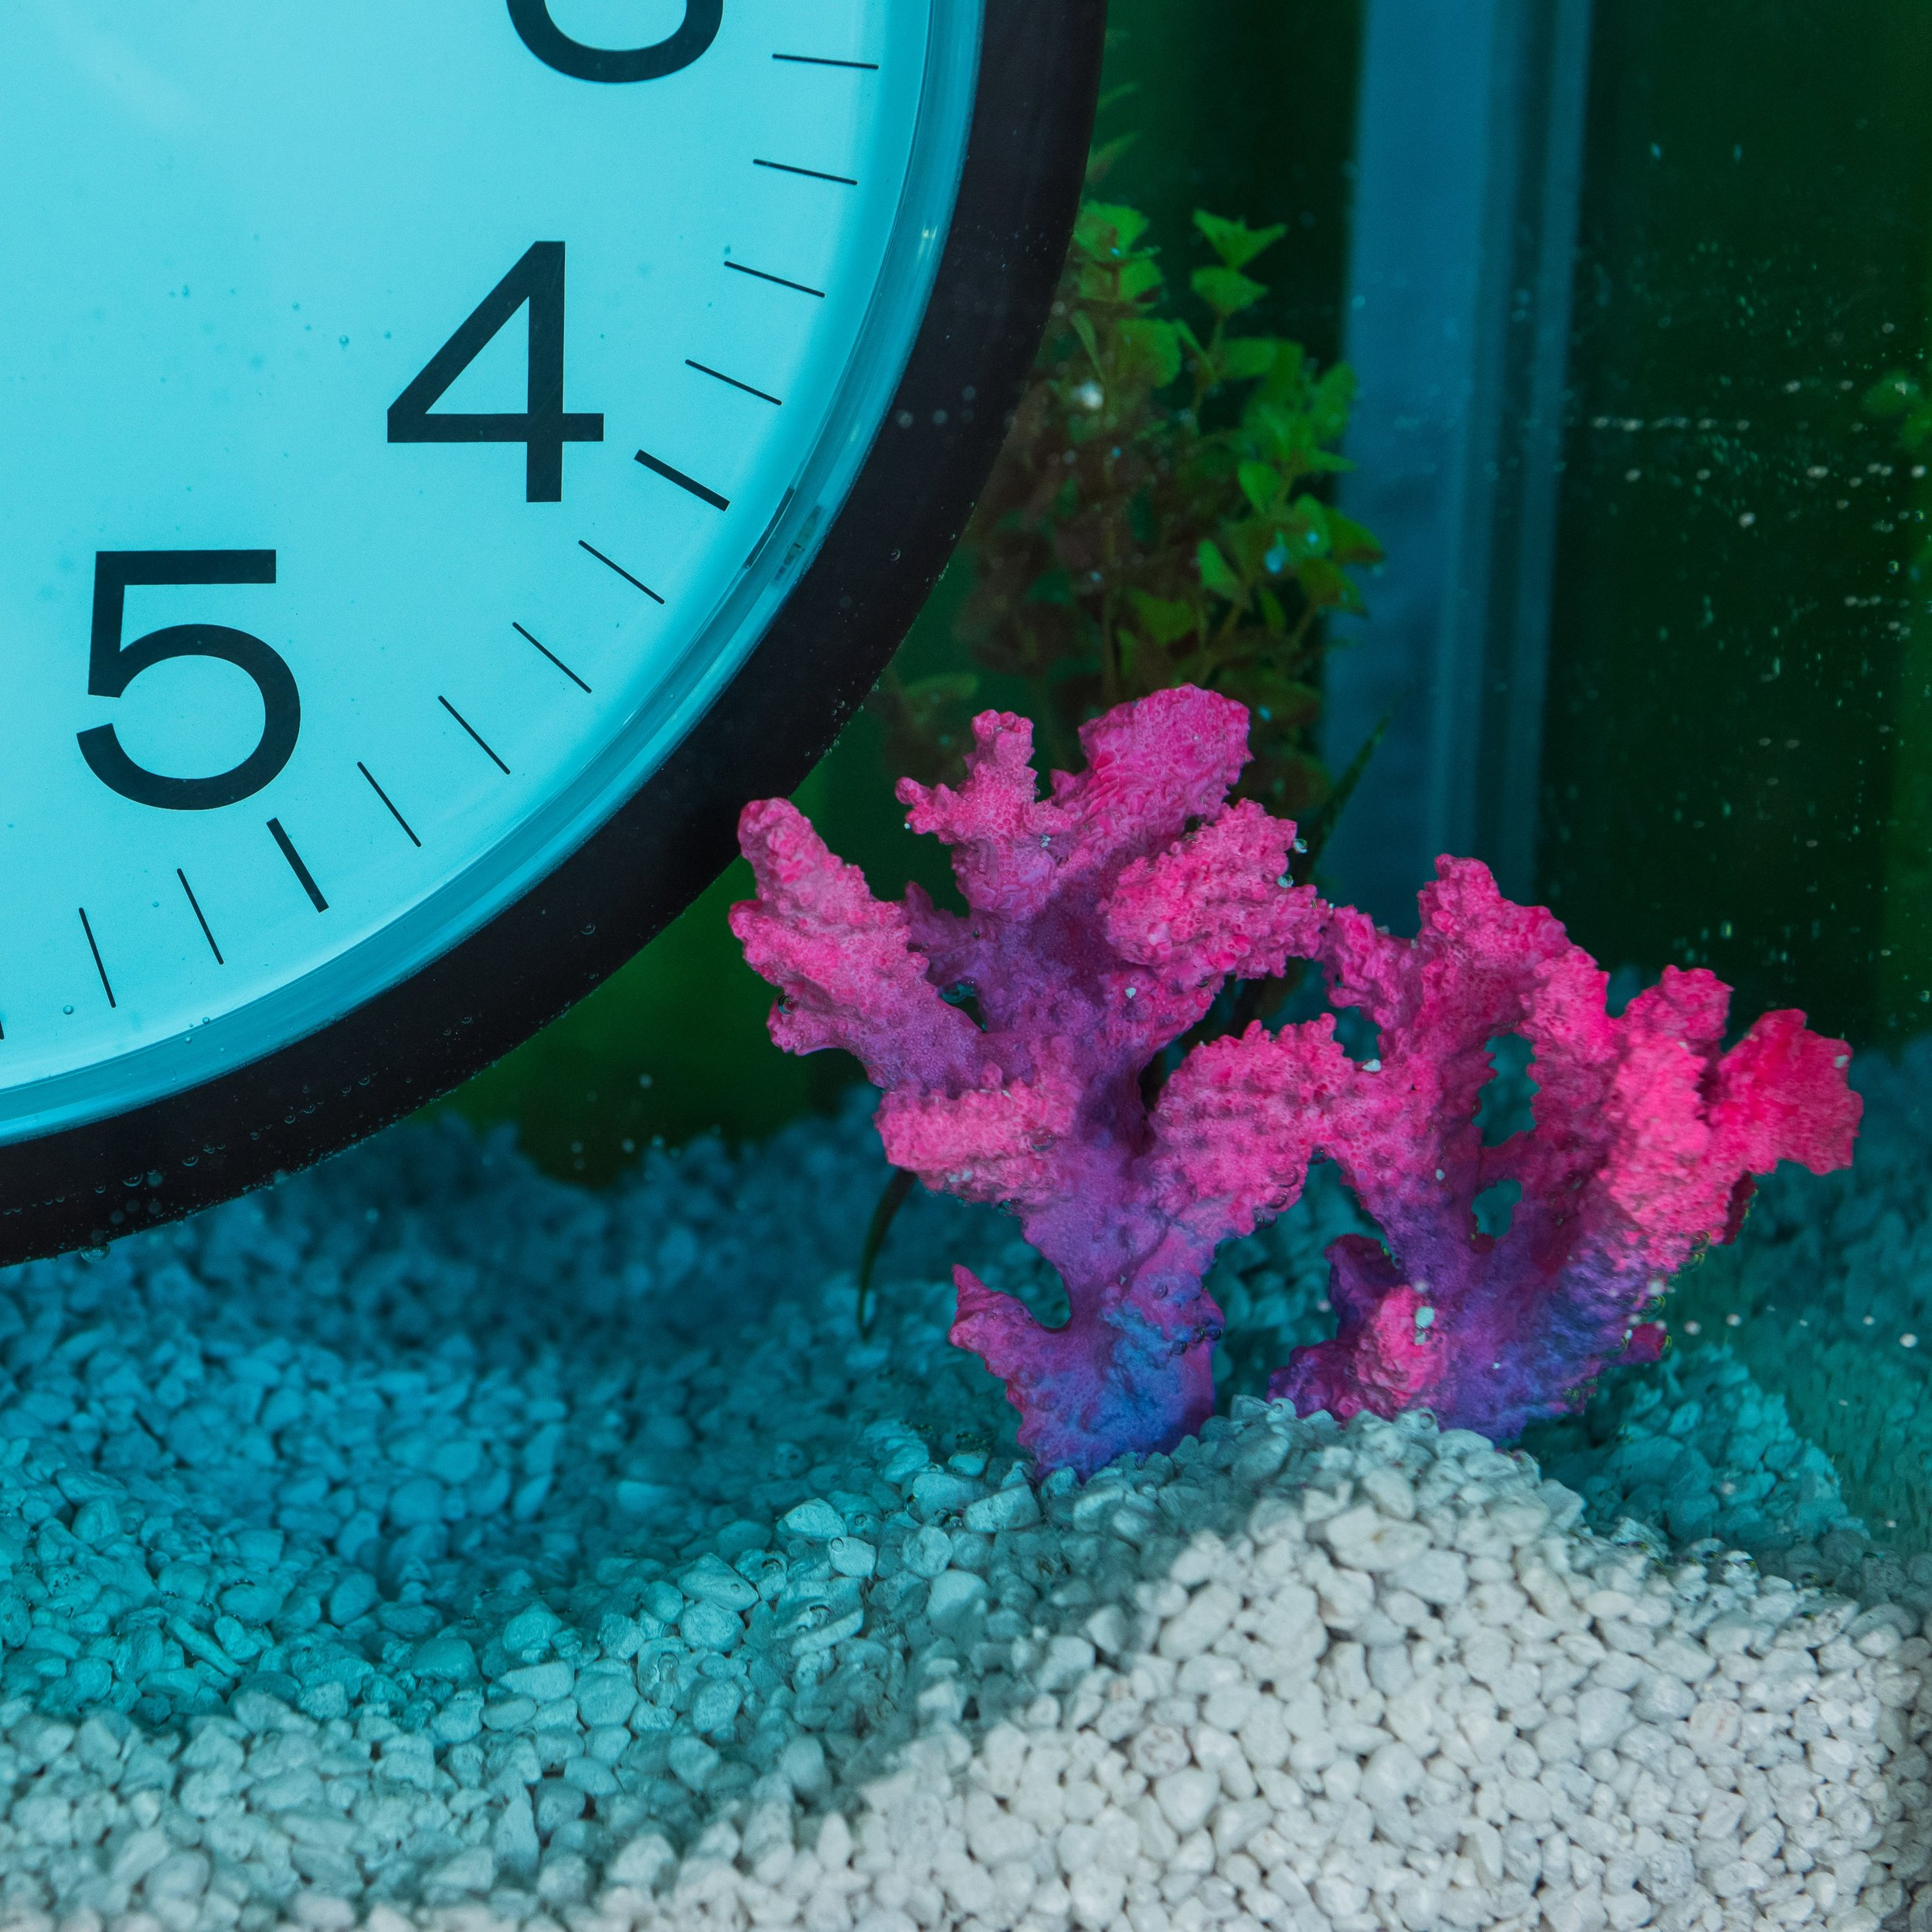 "I die for all mysterious things. (after Félix González-Torres and Damien Hirst)  (detail)  2018  clocks, glass tank, powder coated steel frame, pipes, spray paint, wiring, batteries, switch, water, food coloring, aquarium gravel, fake plants and coral  28"" x 40"" x 13"""